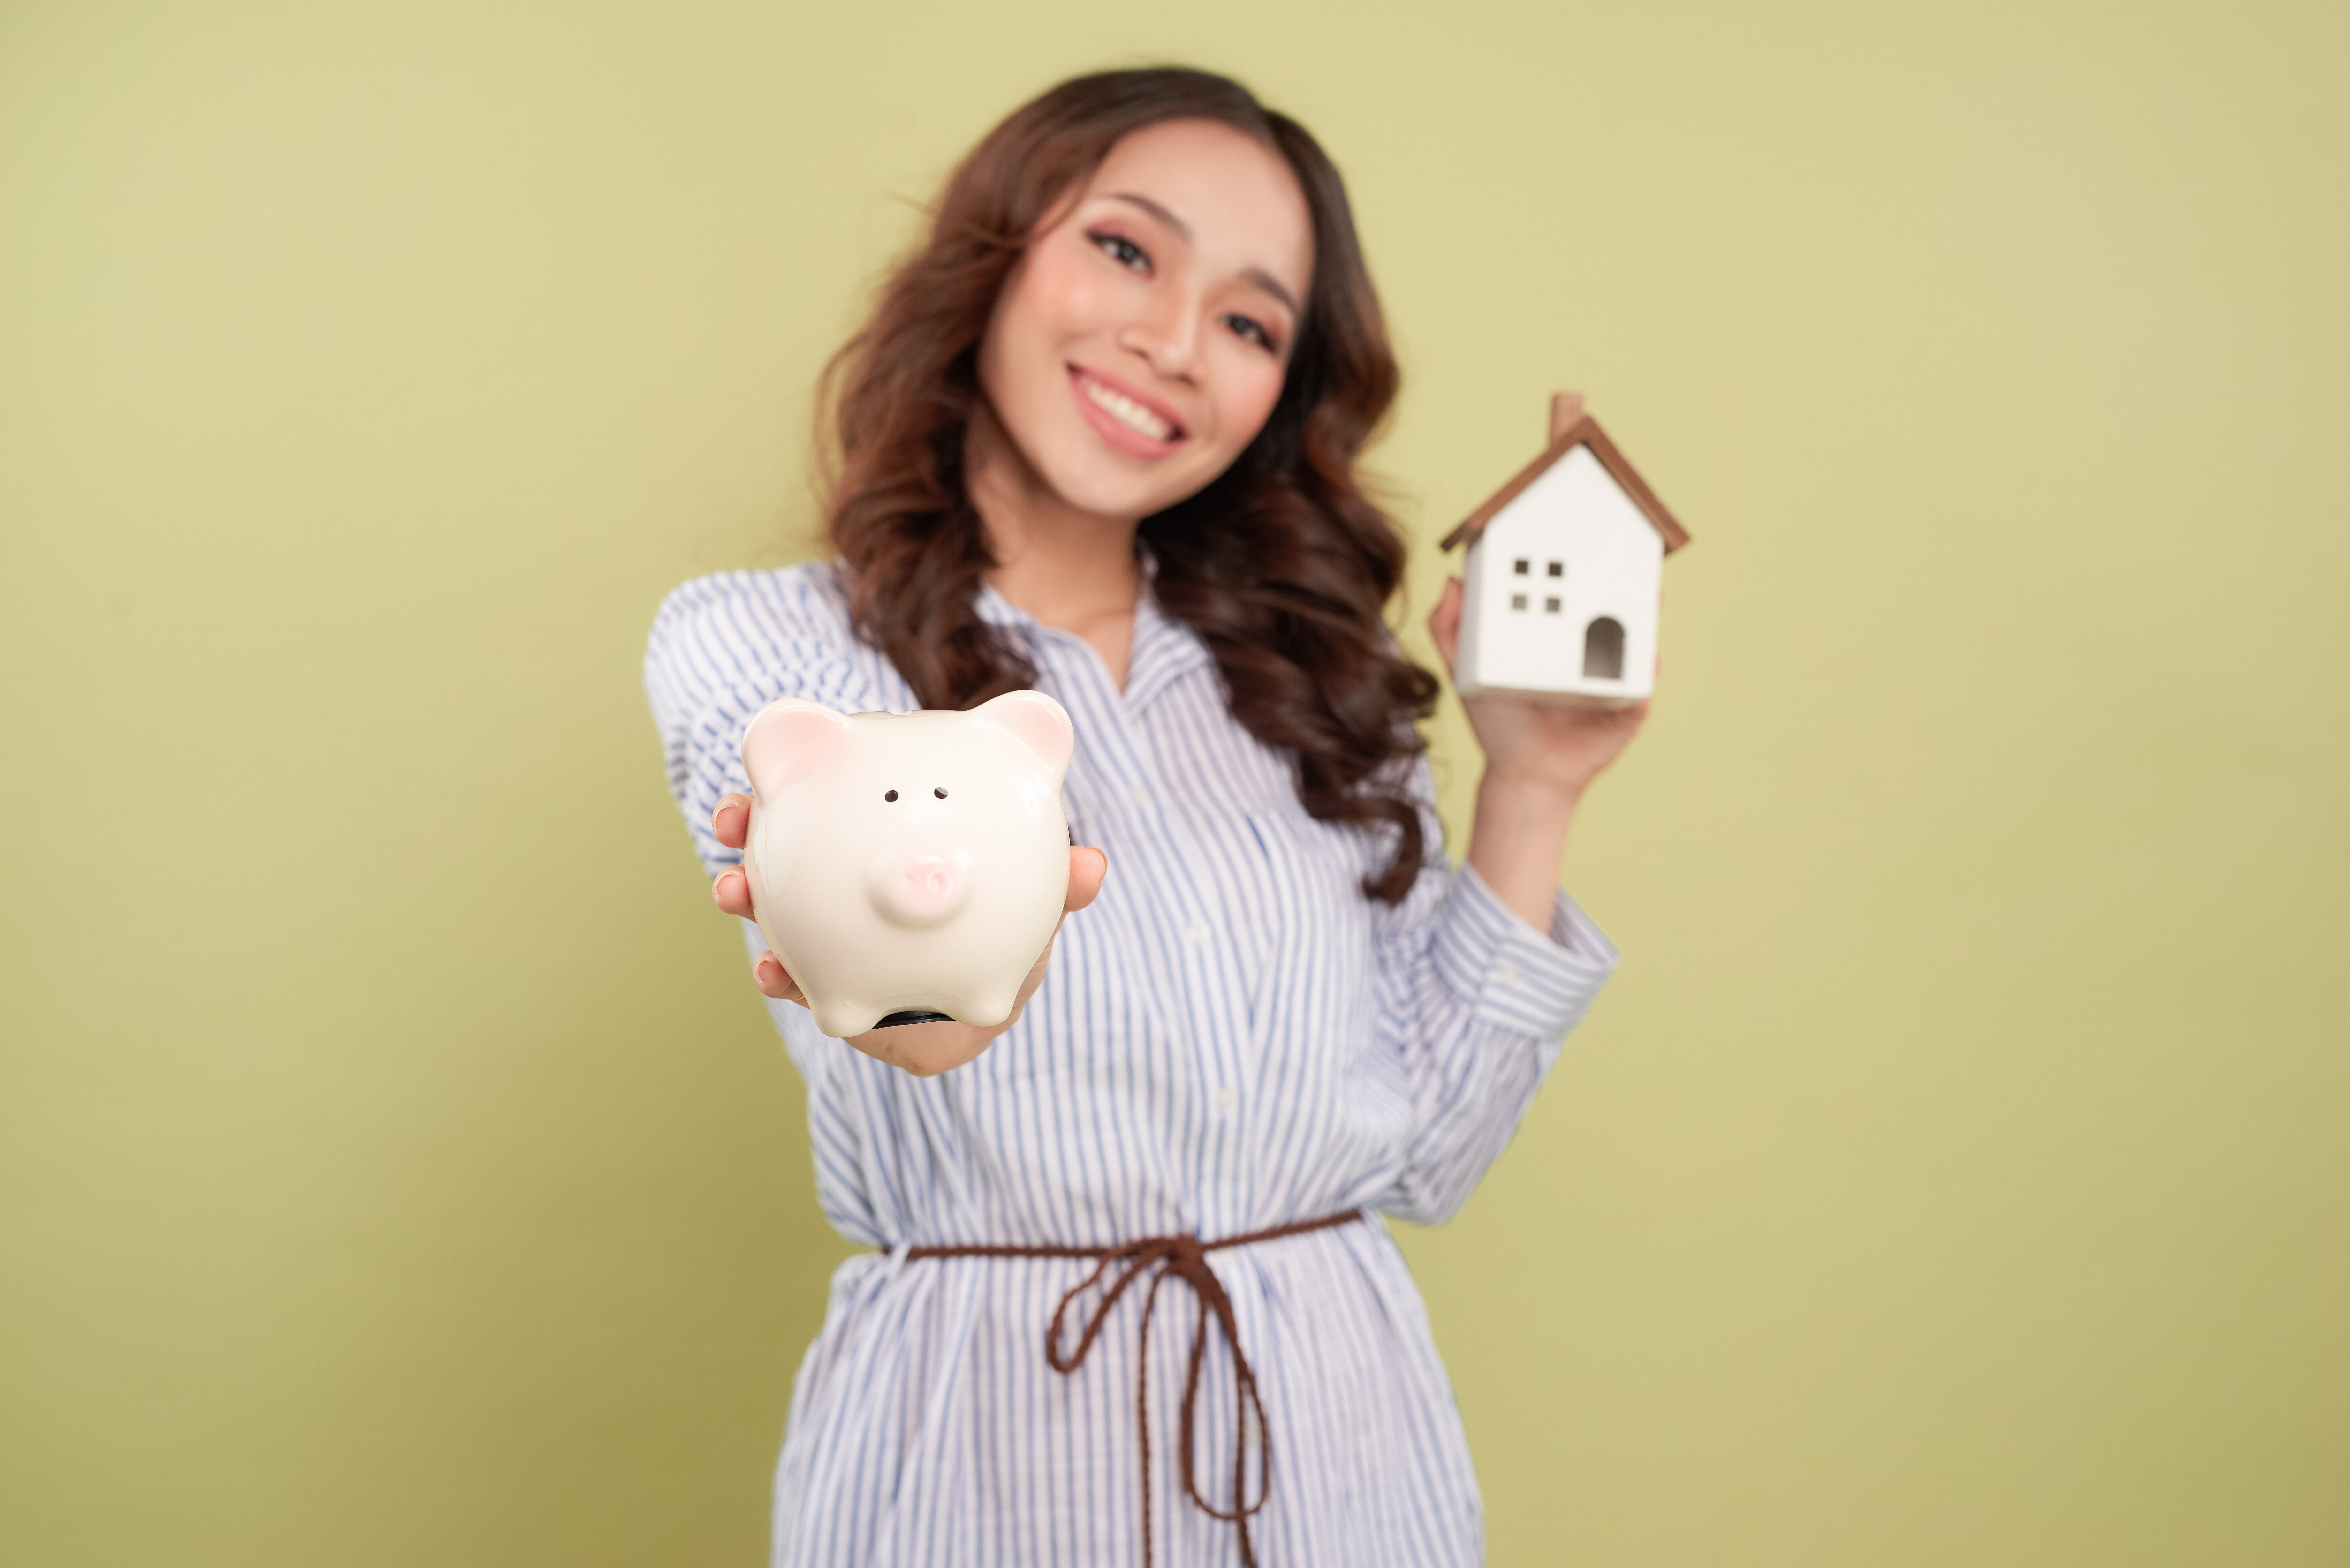 woman holding bank and house closing costs